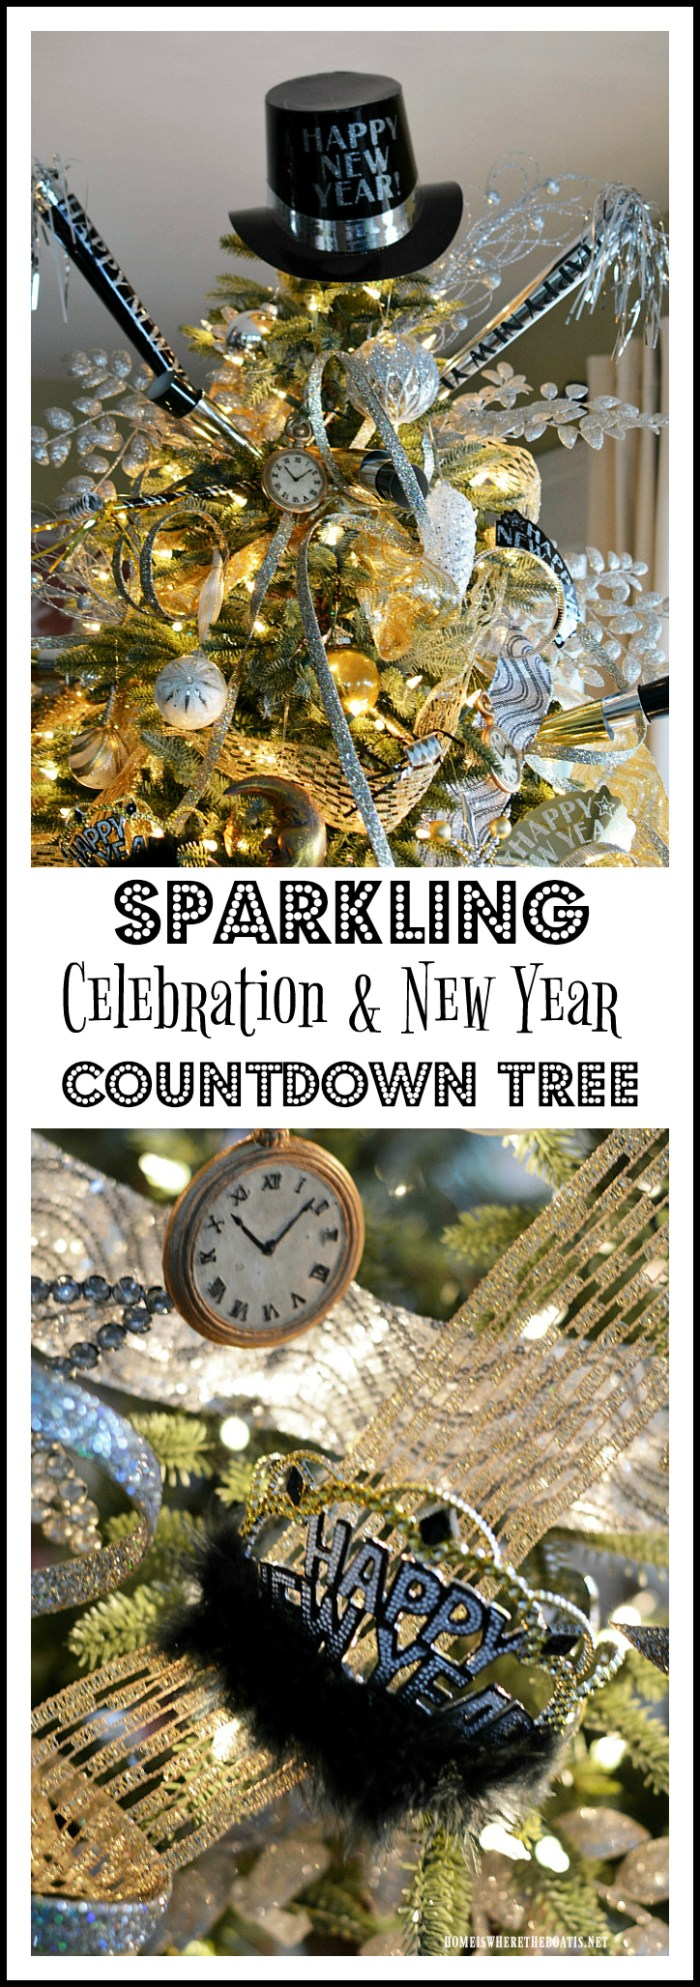 Add some New Year's Eve shimmer and sparkle with gold and silver ribbon, streamers, party horns and tiaras to transform the Christmas tree to a New Year's Countdown Tree | homeiswheretheboatis.net #newyear #party #tree